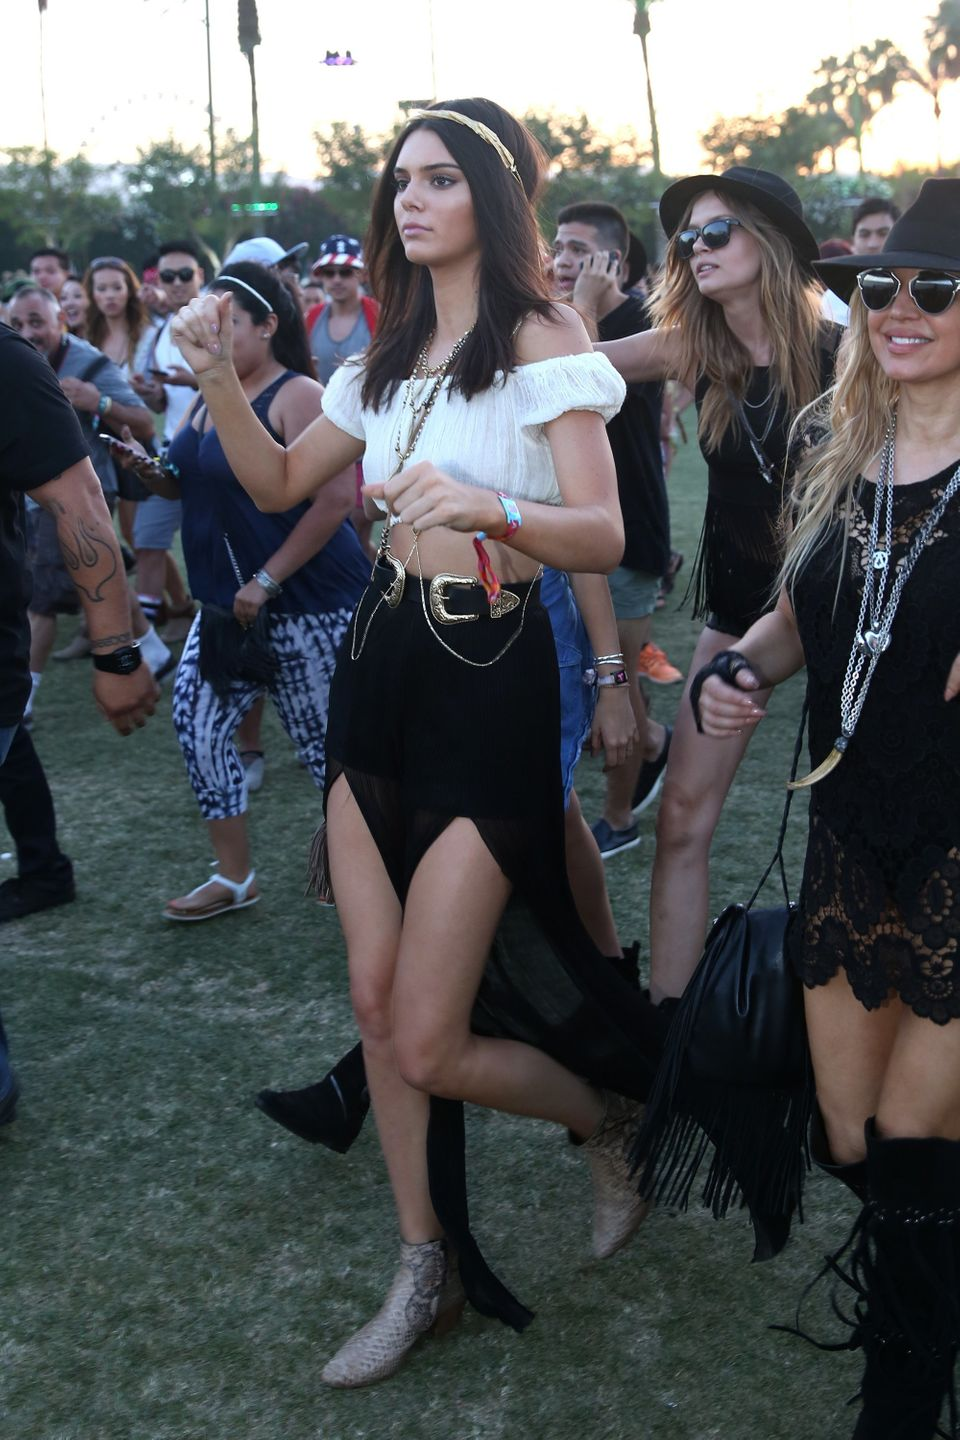 Kendall Jenner attends the 2015 Coachella Music and Arts Festival on Saturday, April 11, 2015, in Indio, Calif. (Photo by Ric